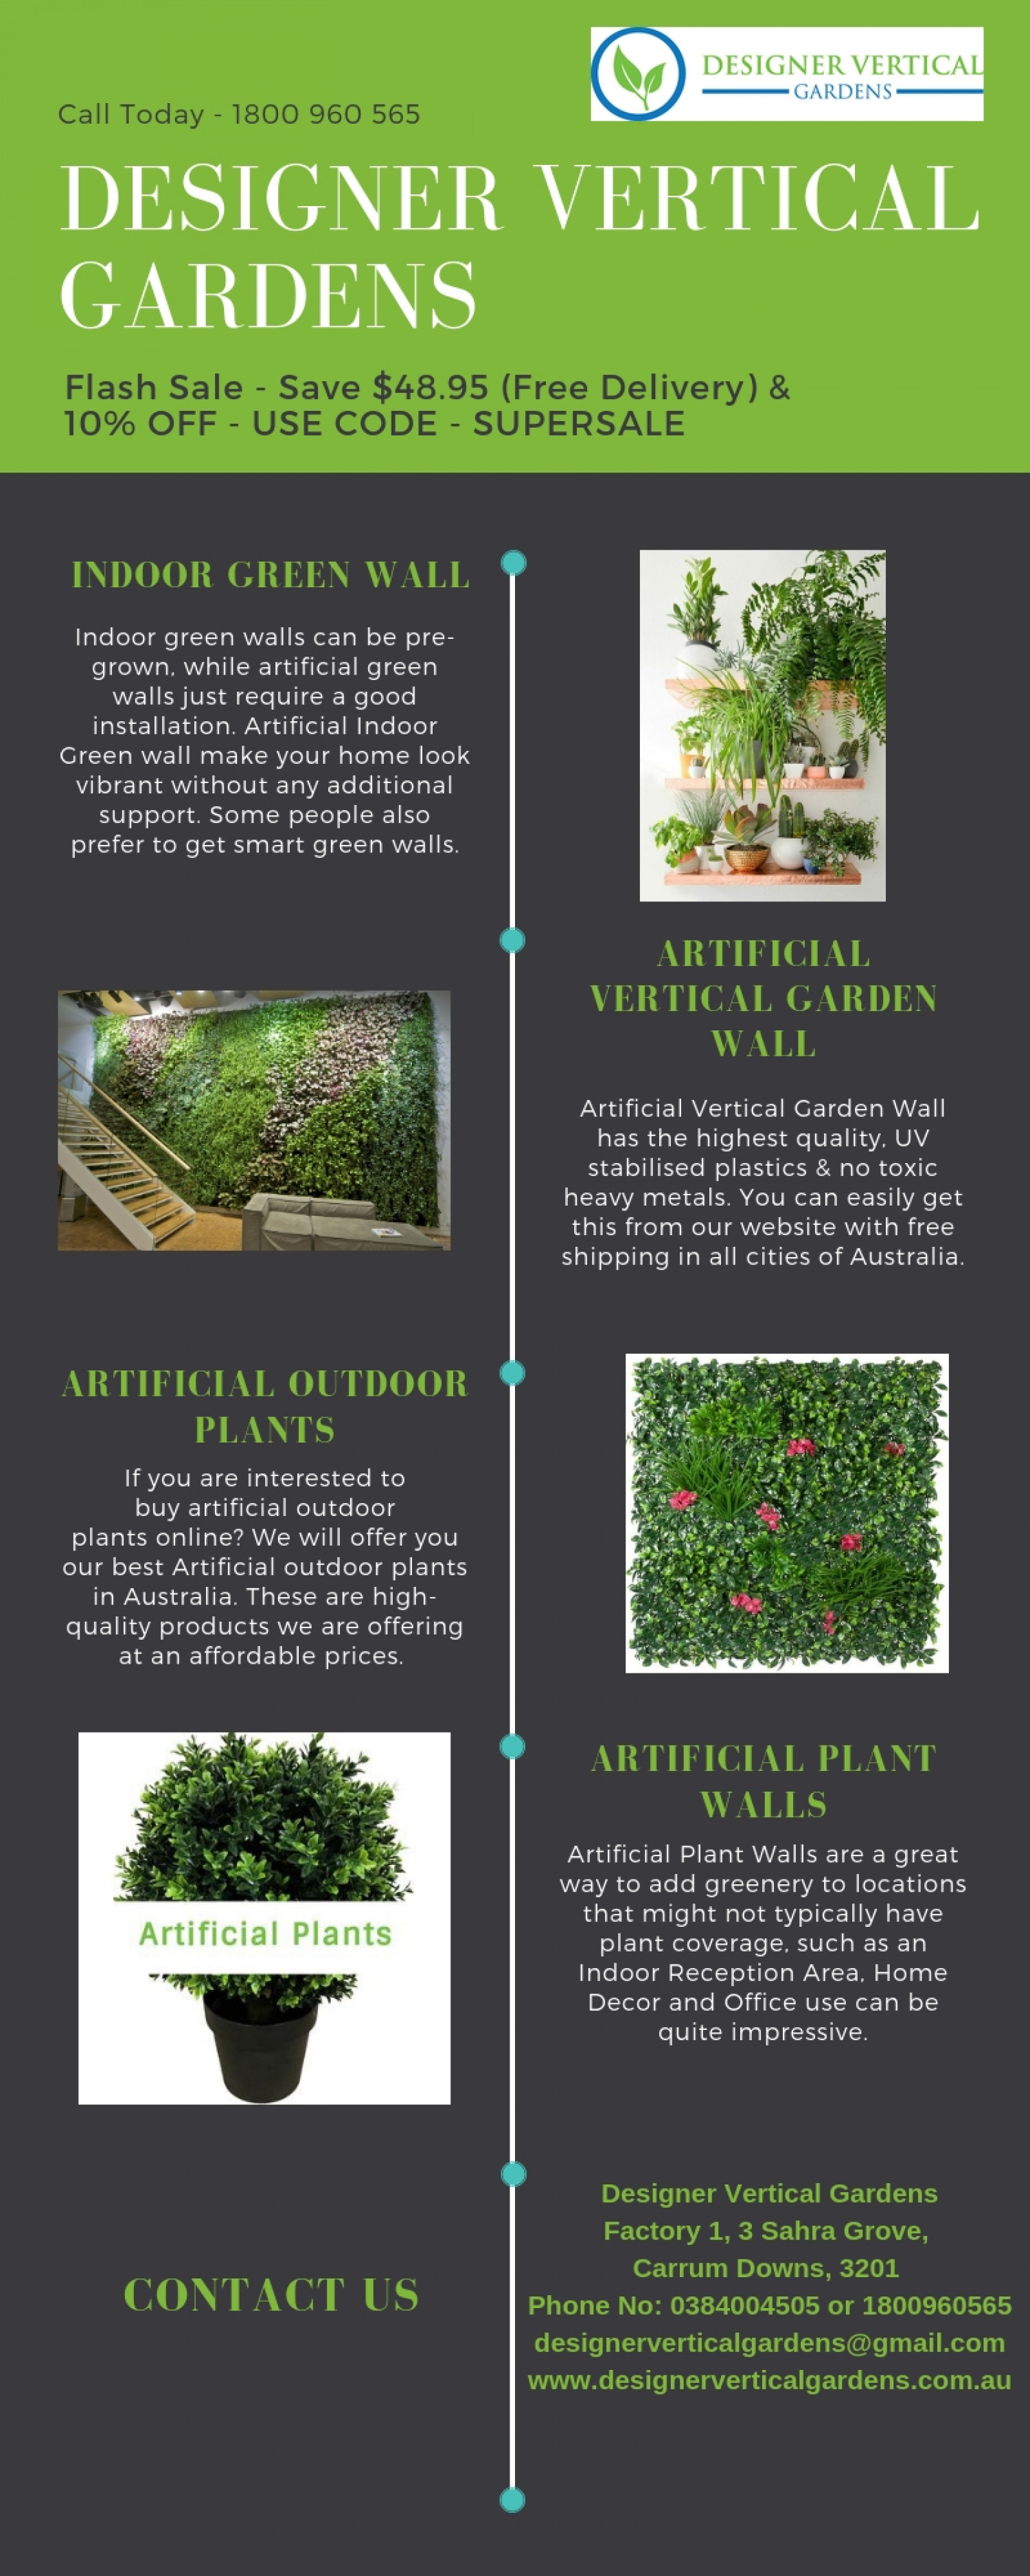 Artificial Outdoor Plants in Melbourne Infographic